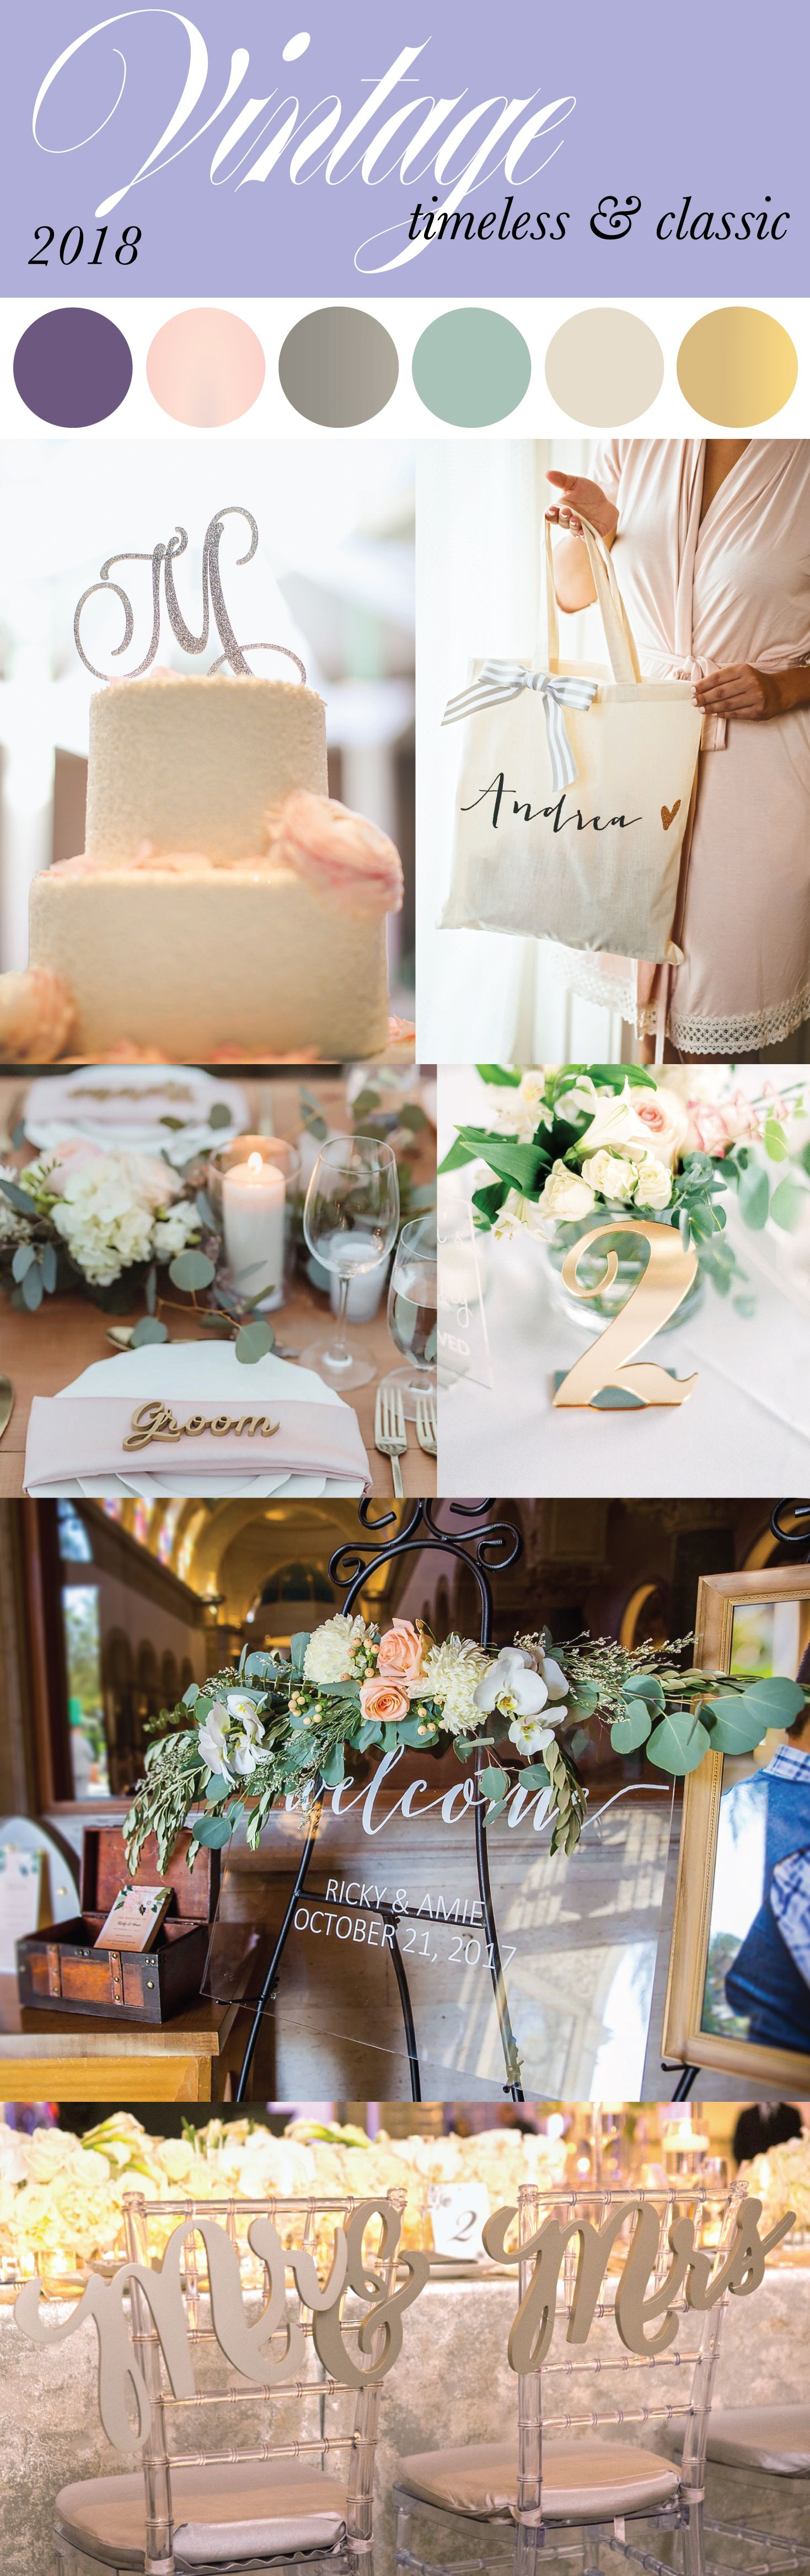 Wedding decorations near me october 2018 Modern Vintage Color Palette for  Weddings featuring Ultra